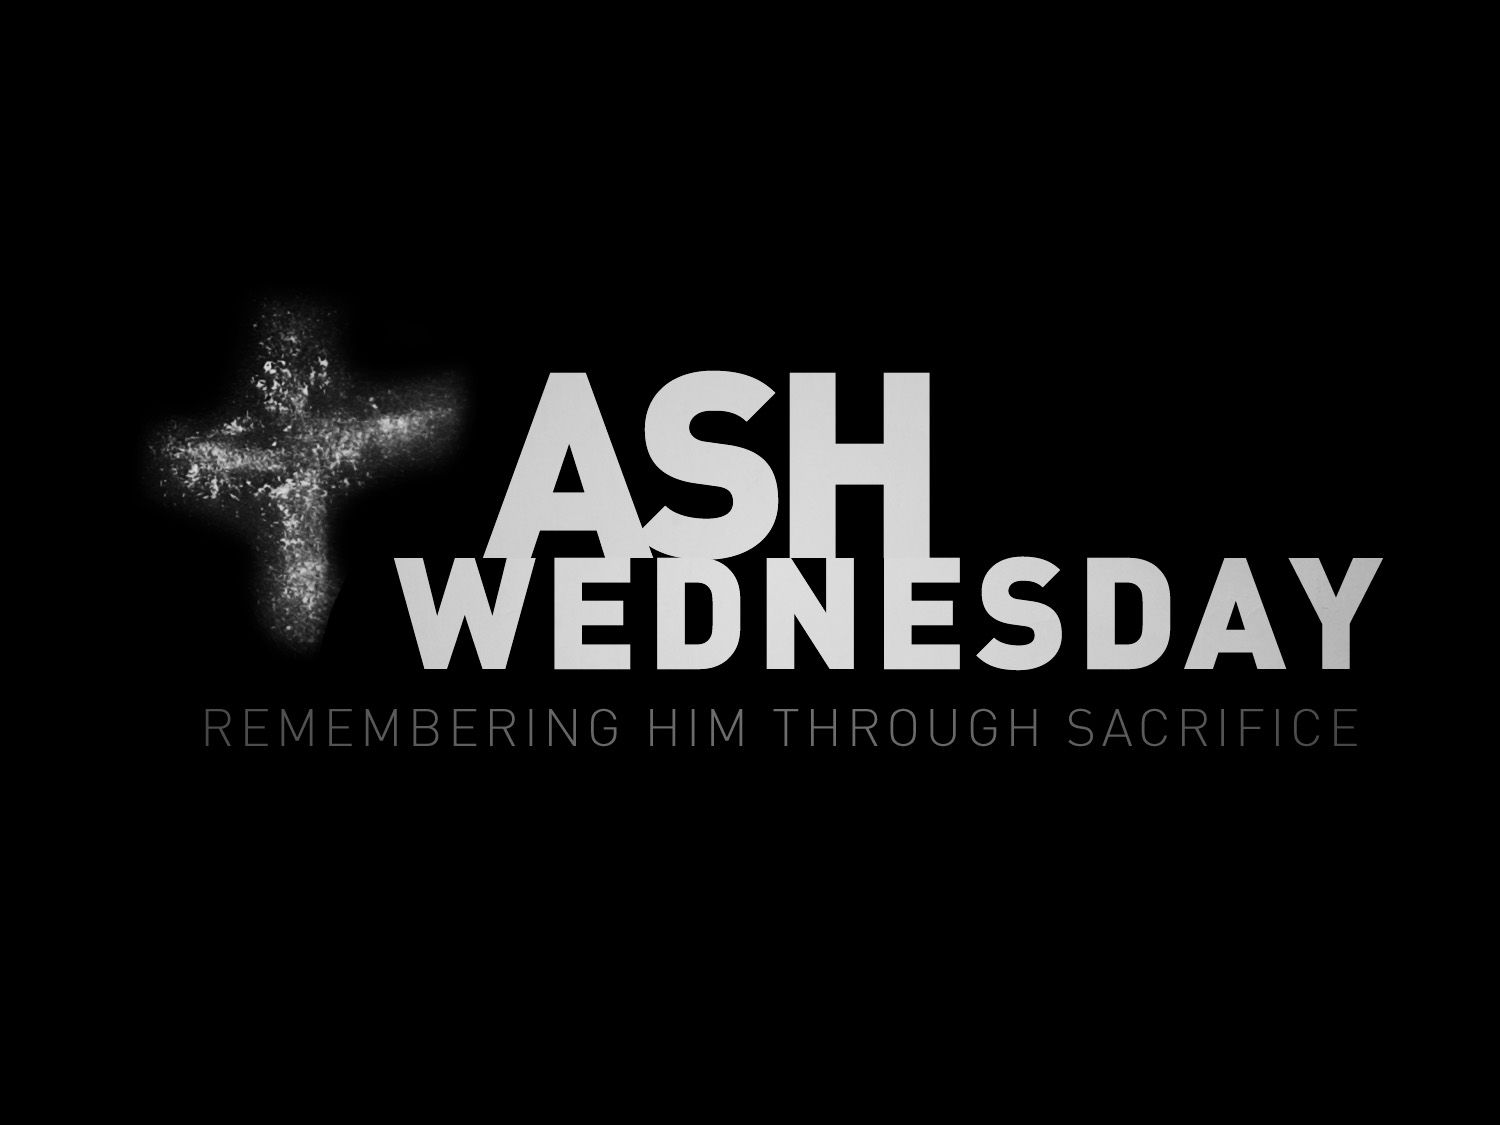 Free Download Ash Wednesday Hd Wallpaper Pictures